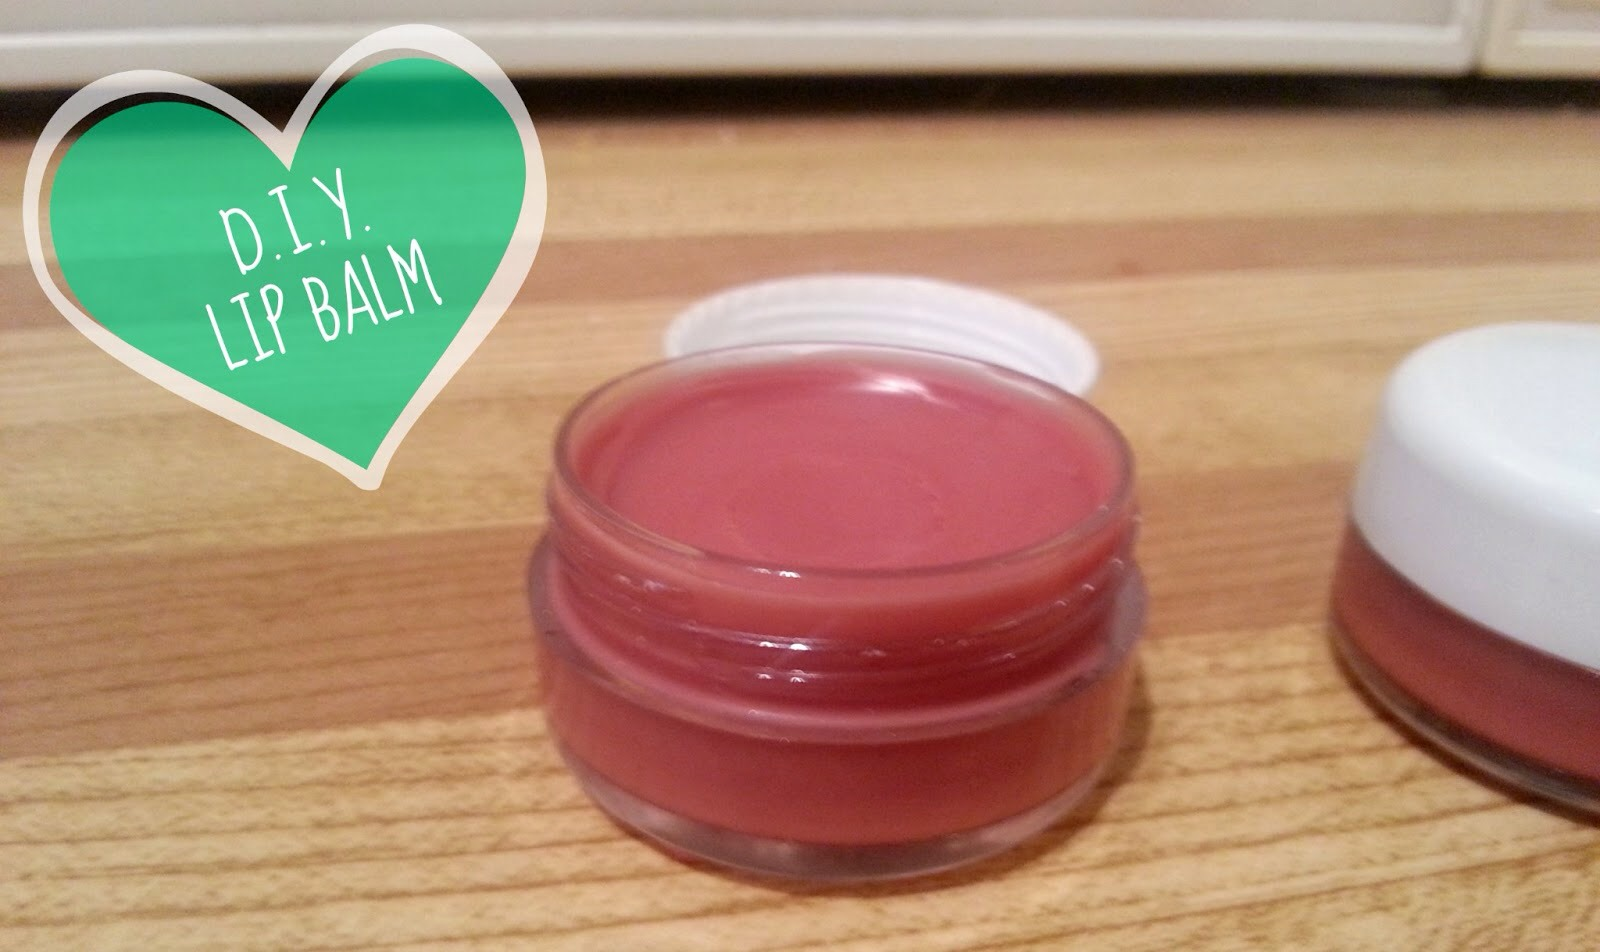 Take some Vaseline and mix it with a powder of your choice! You can use eyeshadow, blush, whatever! This will turn the powder into the lip color of your choice (or cream blush!) also try using kool aid as the powder, this turns out beautiful AND adds flavor!